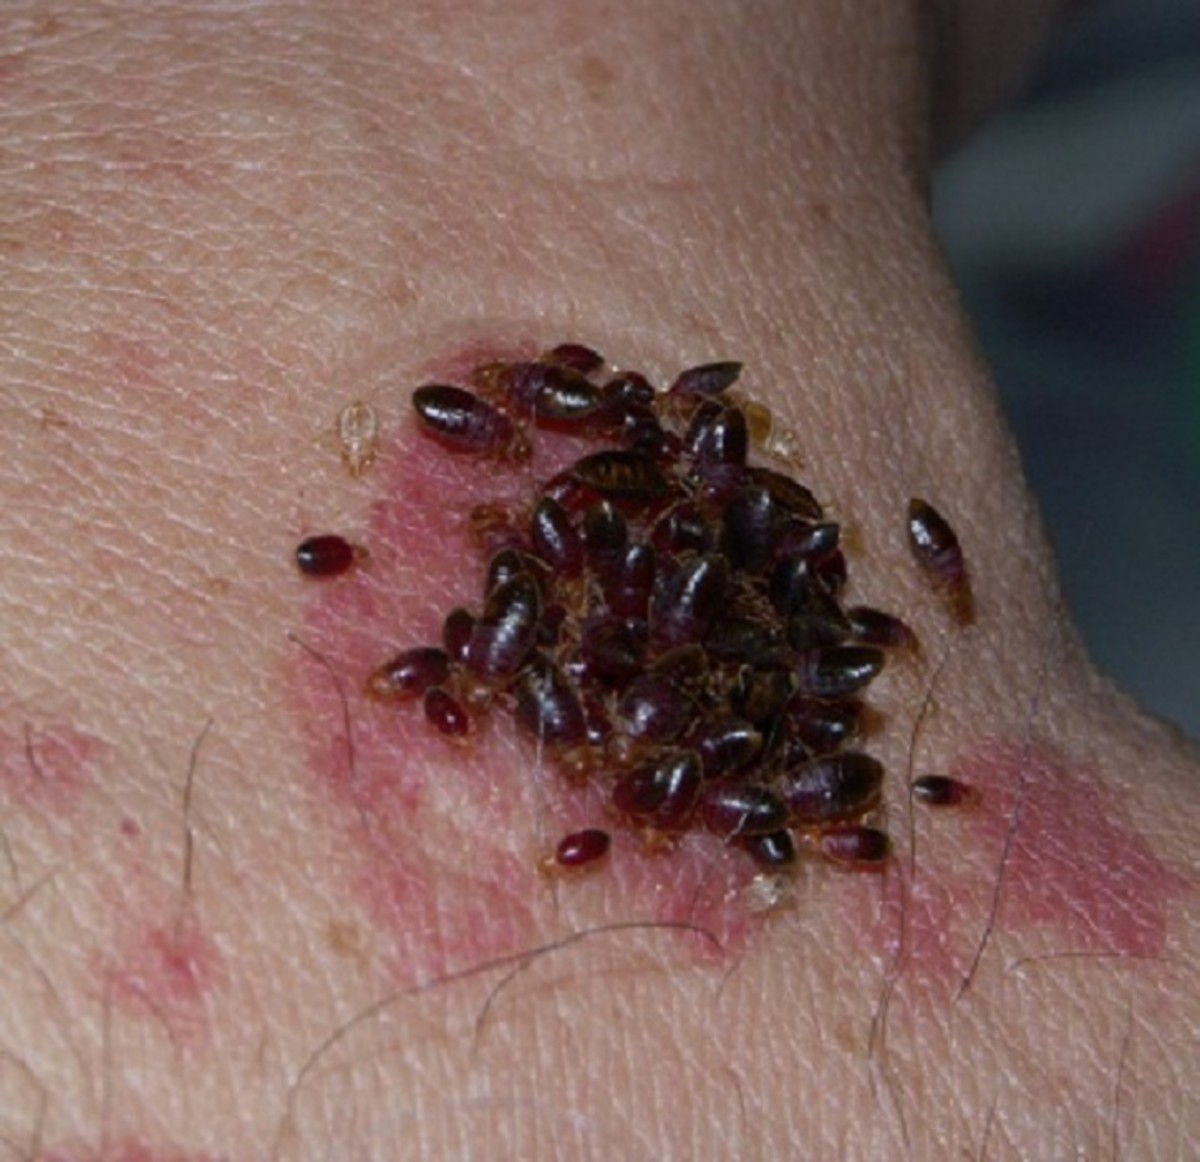 Yes, those are bed bugs; and yes, that's a human that they are biting.